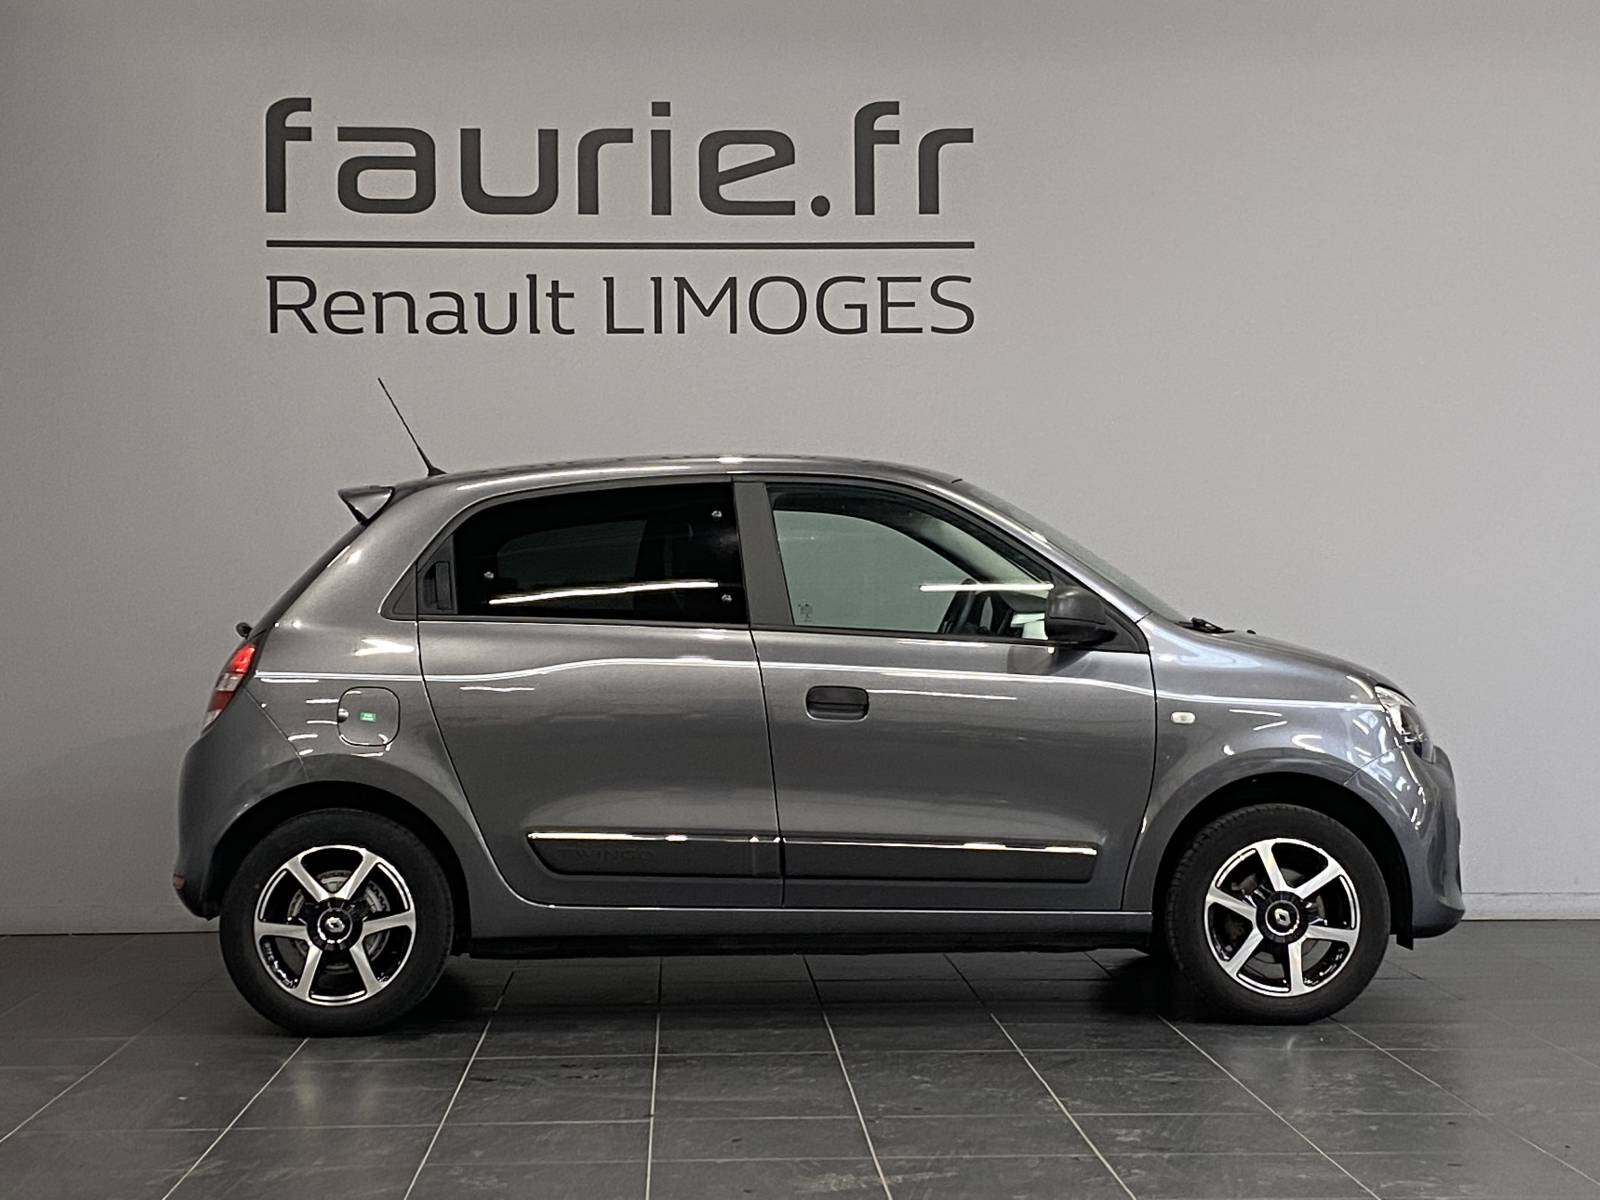 RENAULT Twingo III 0.9 TCe 90 Energy E6C - véhicule d'occasion - Site Internet Faurie - Renault - Faurie Auto Limoges - 87000 - Limoges - 5